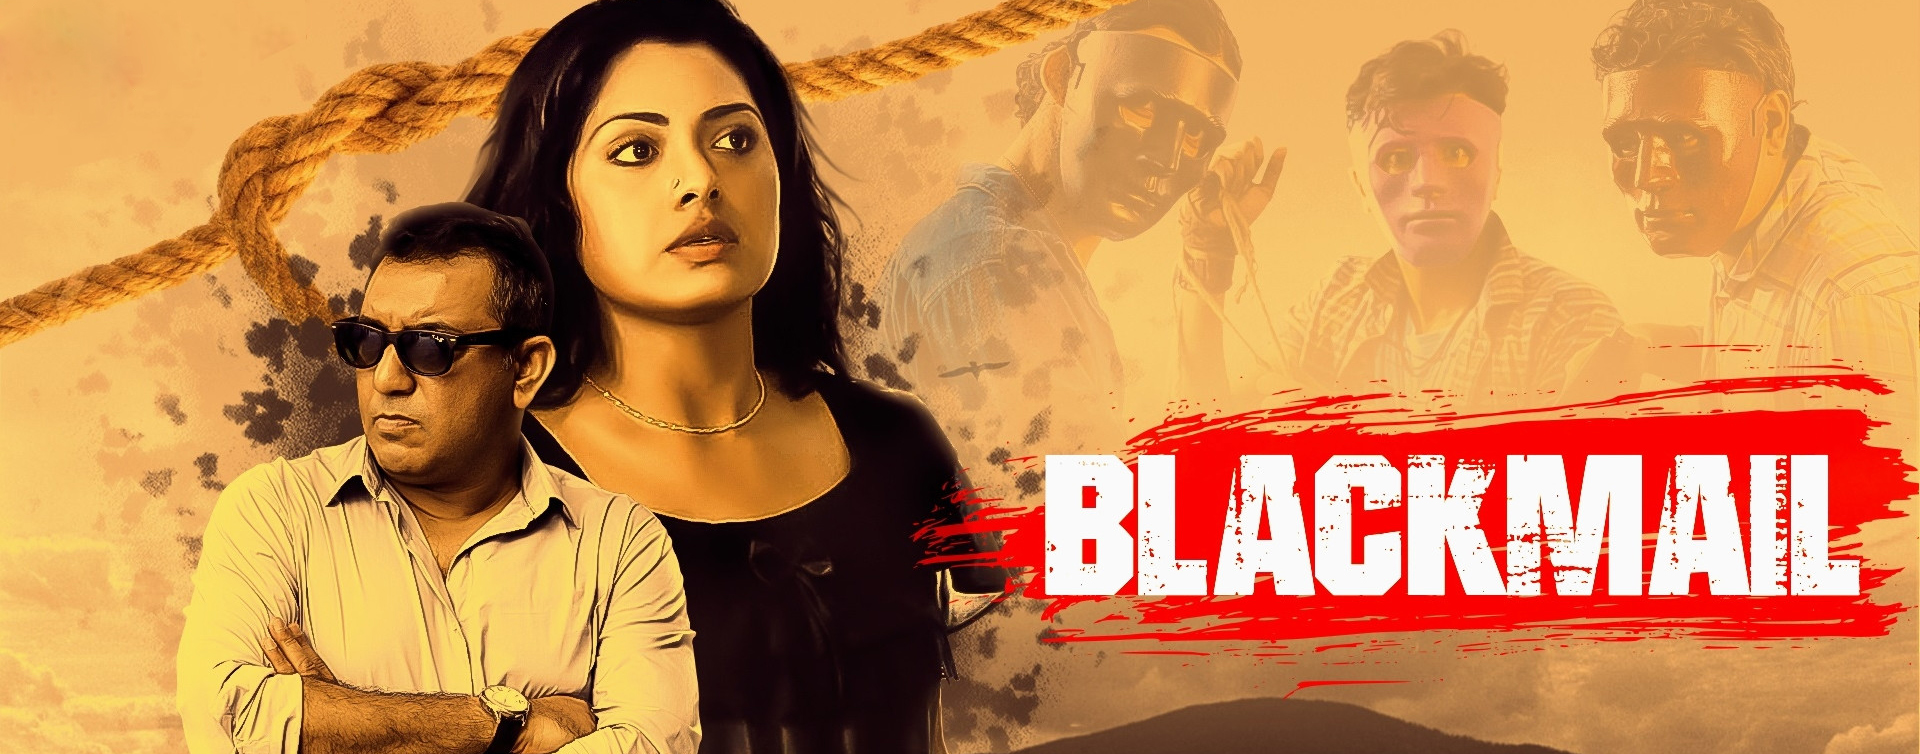 18+Blackmail Season 1 Complete (2020) Bengali 720p WEB-DL x264 500MB Download